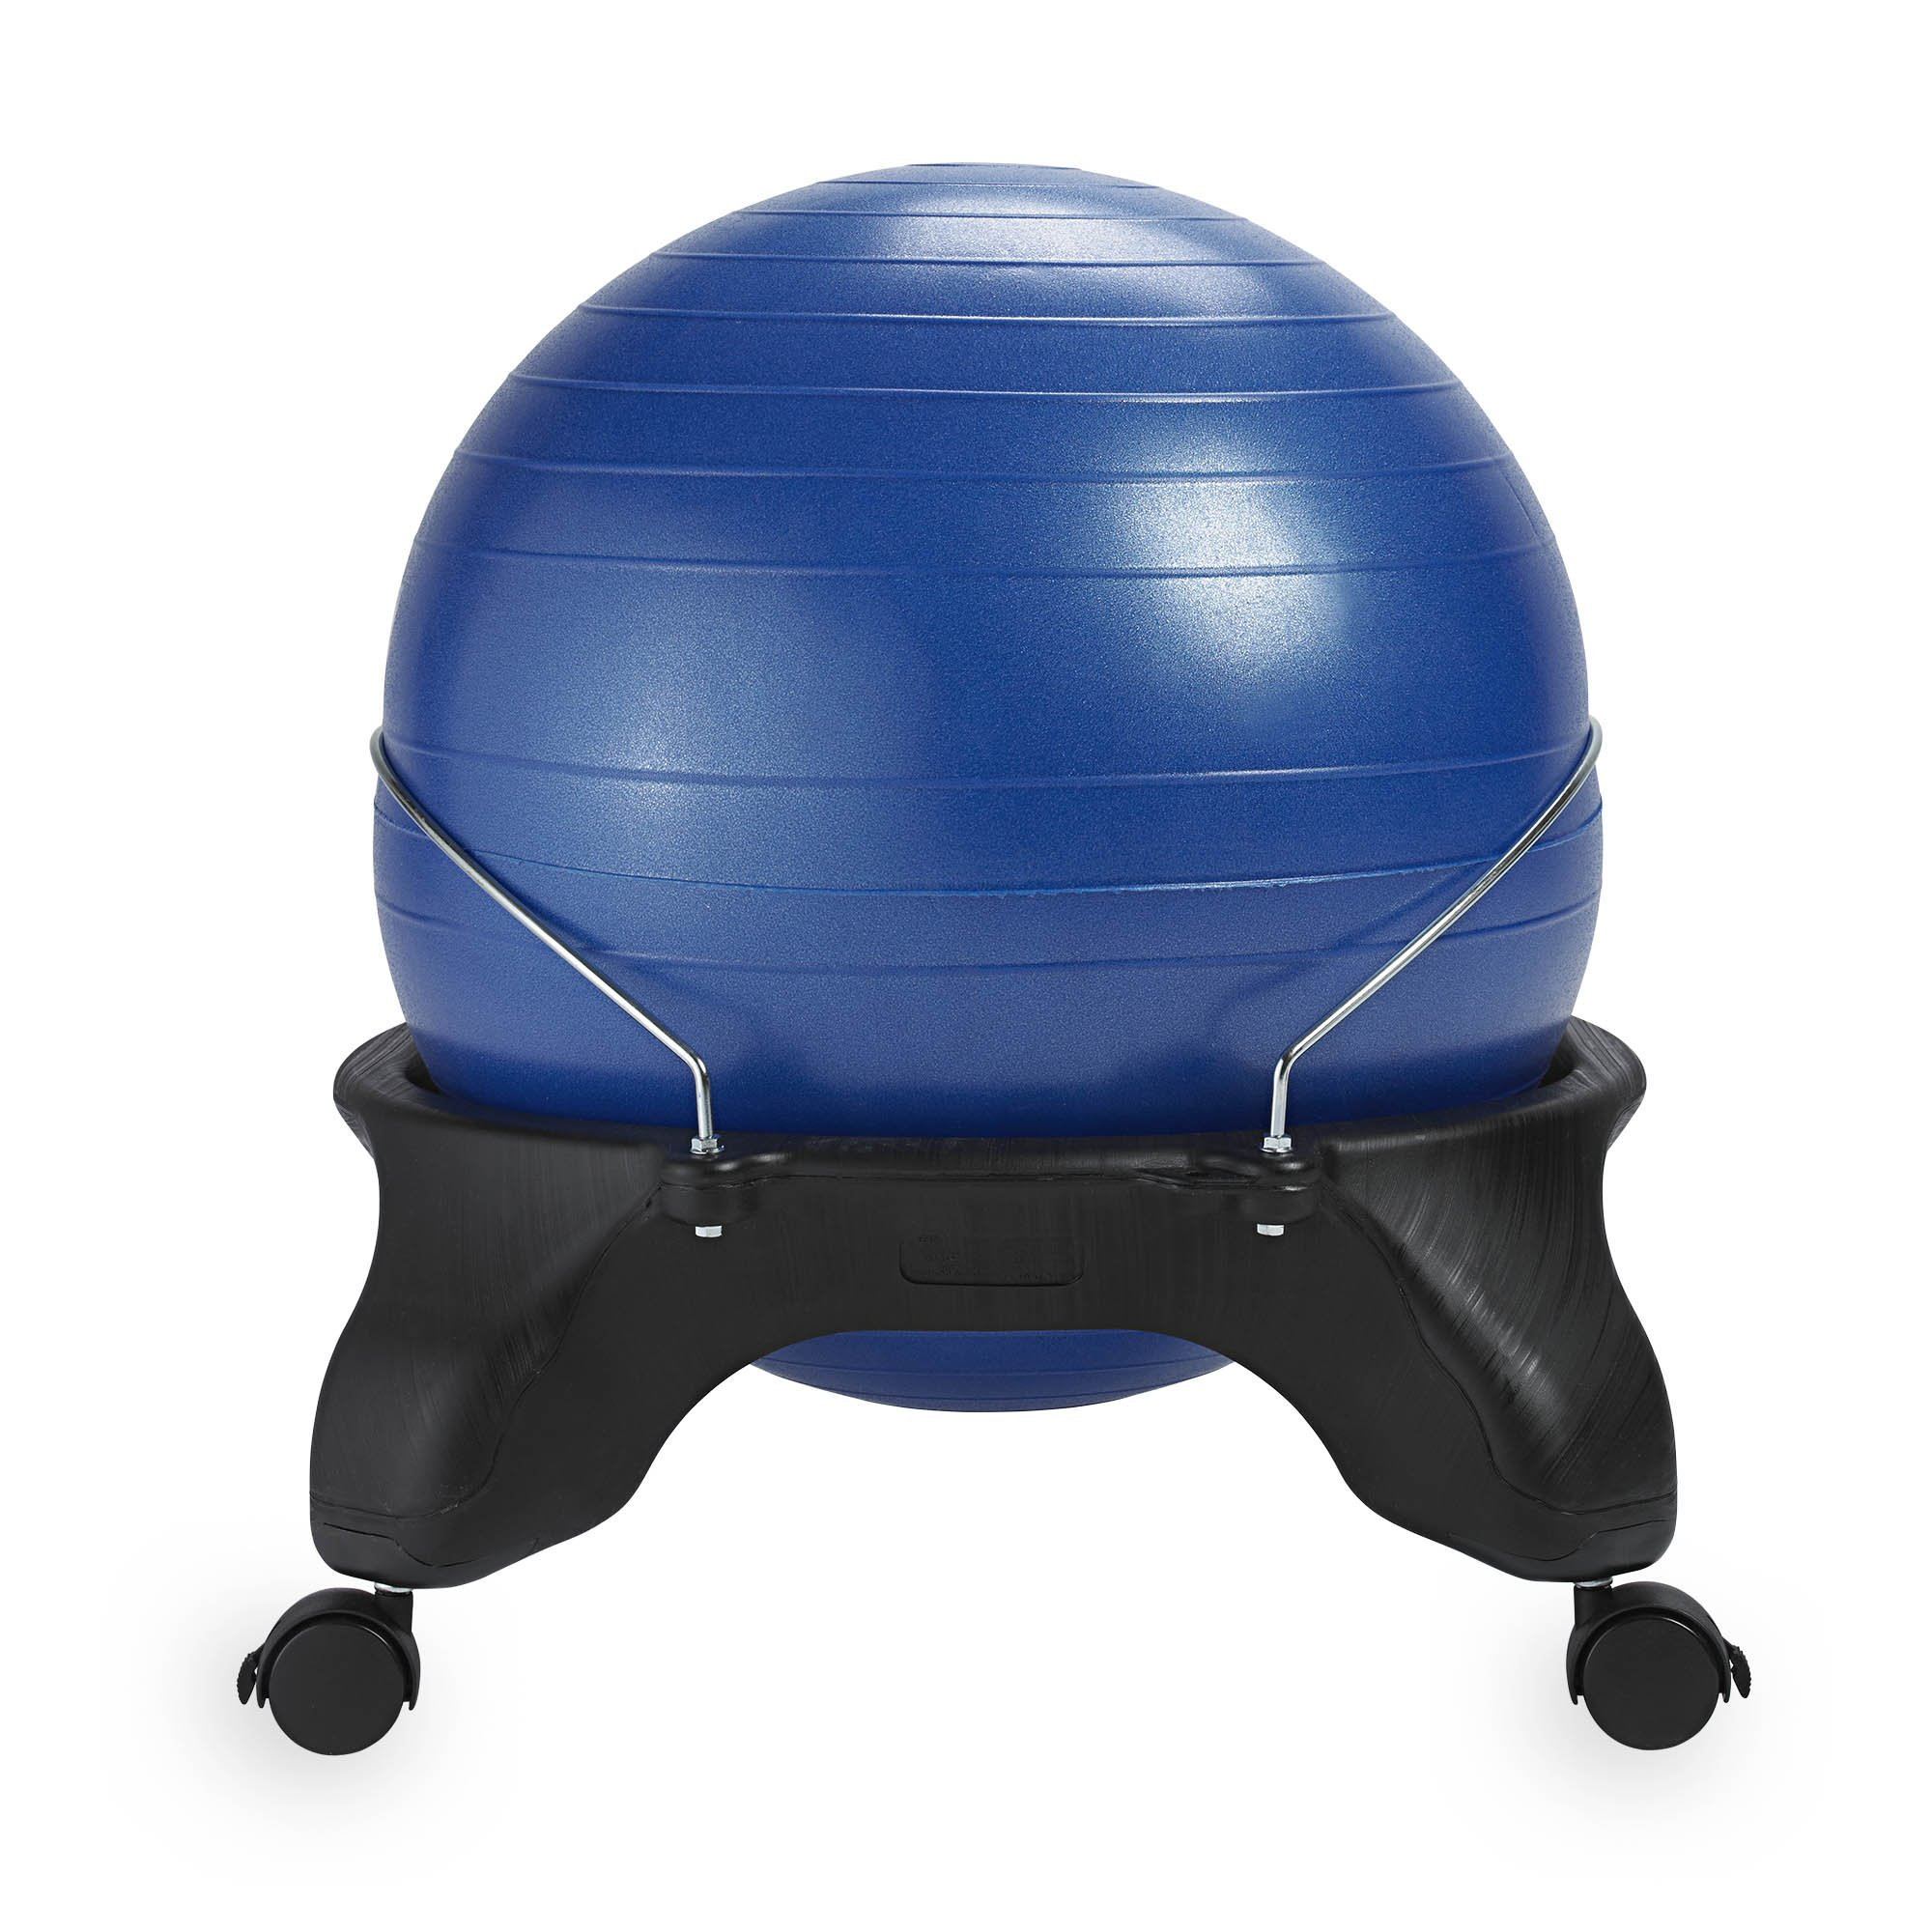 Gaiam classic backless balance ball chair exercise stability yoga ball premium ergonomic chair - Replacing office chair with exercise ball ...